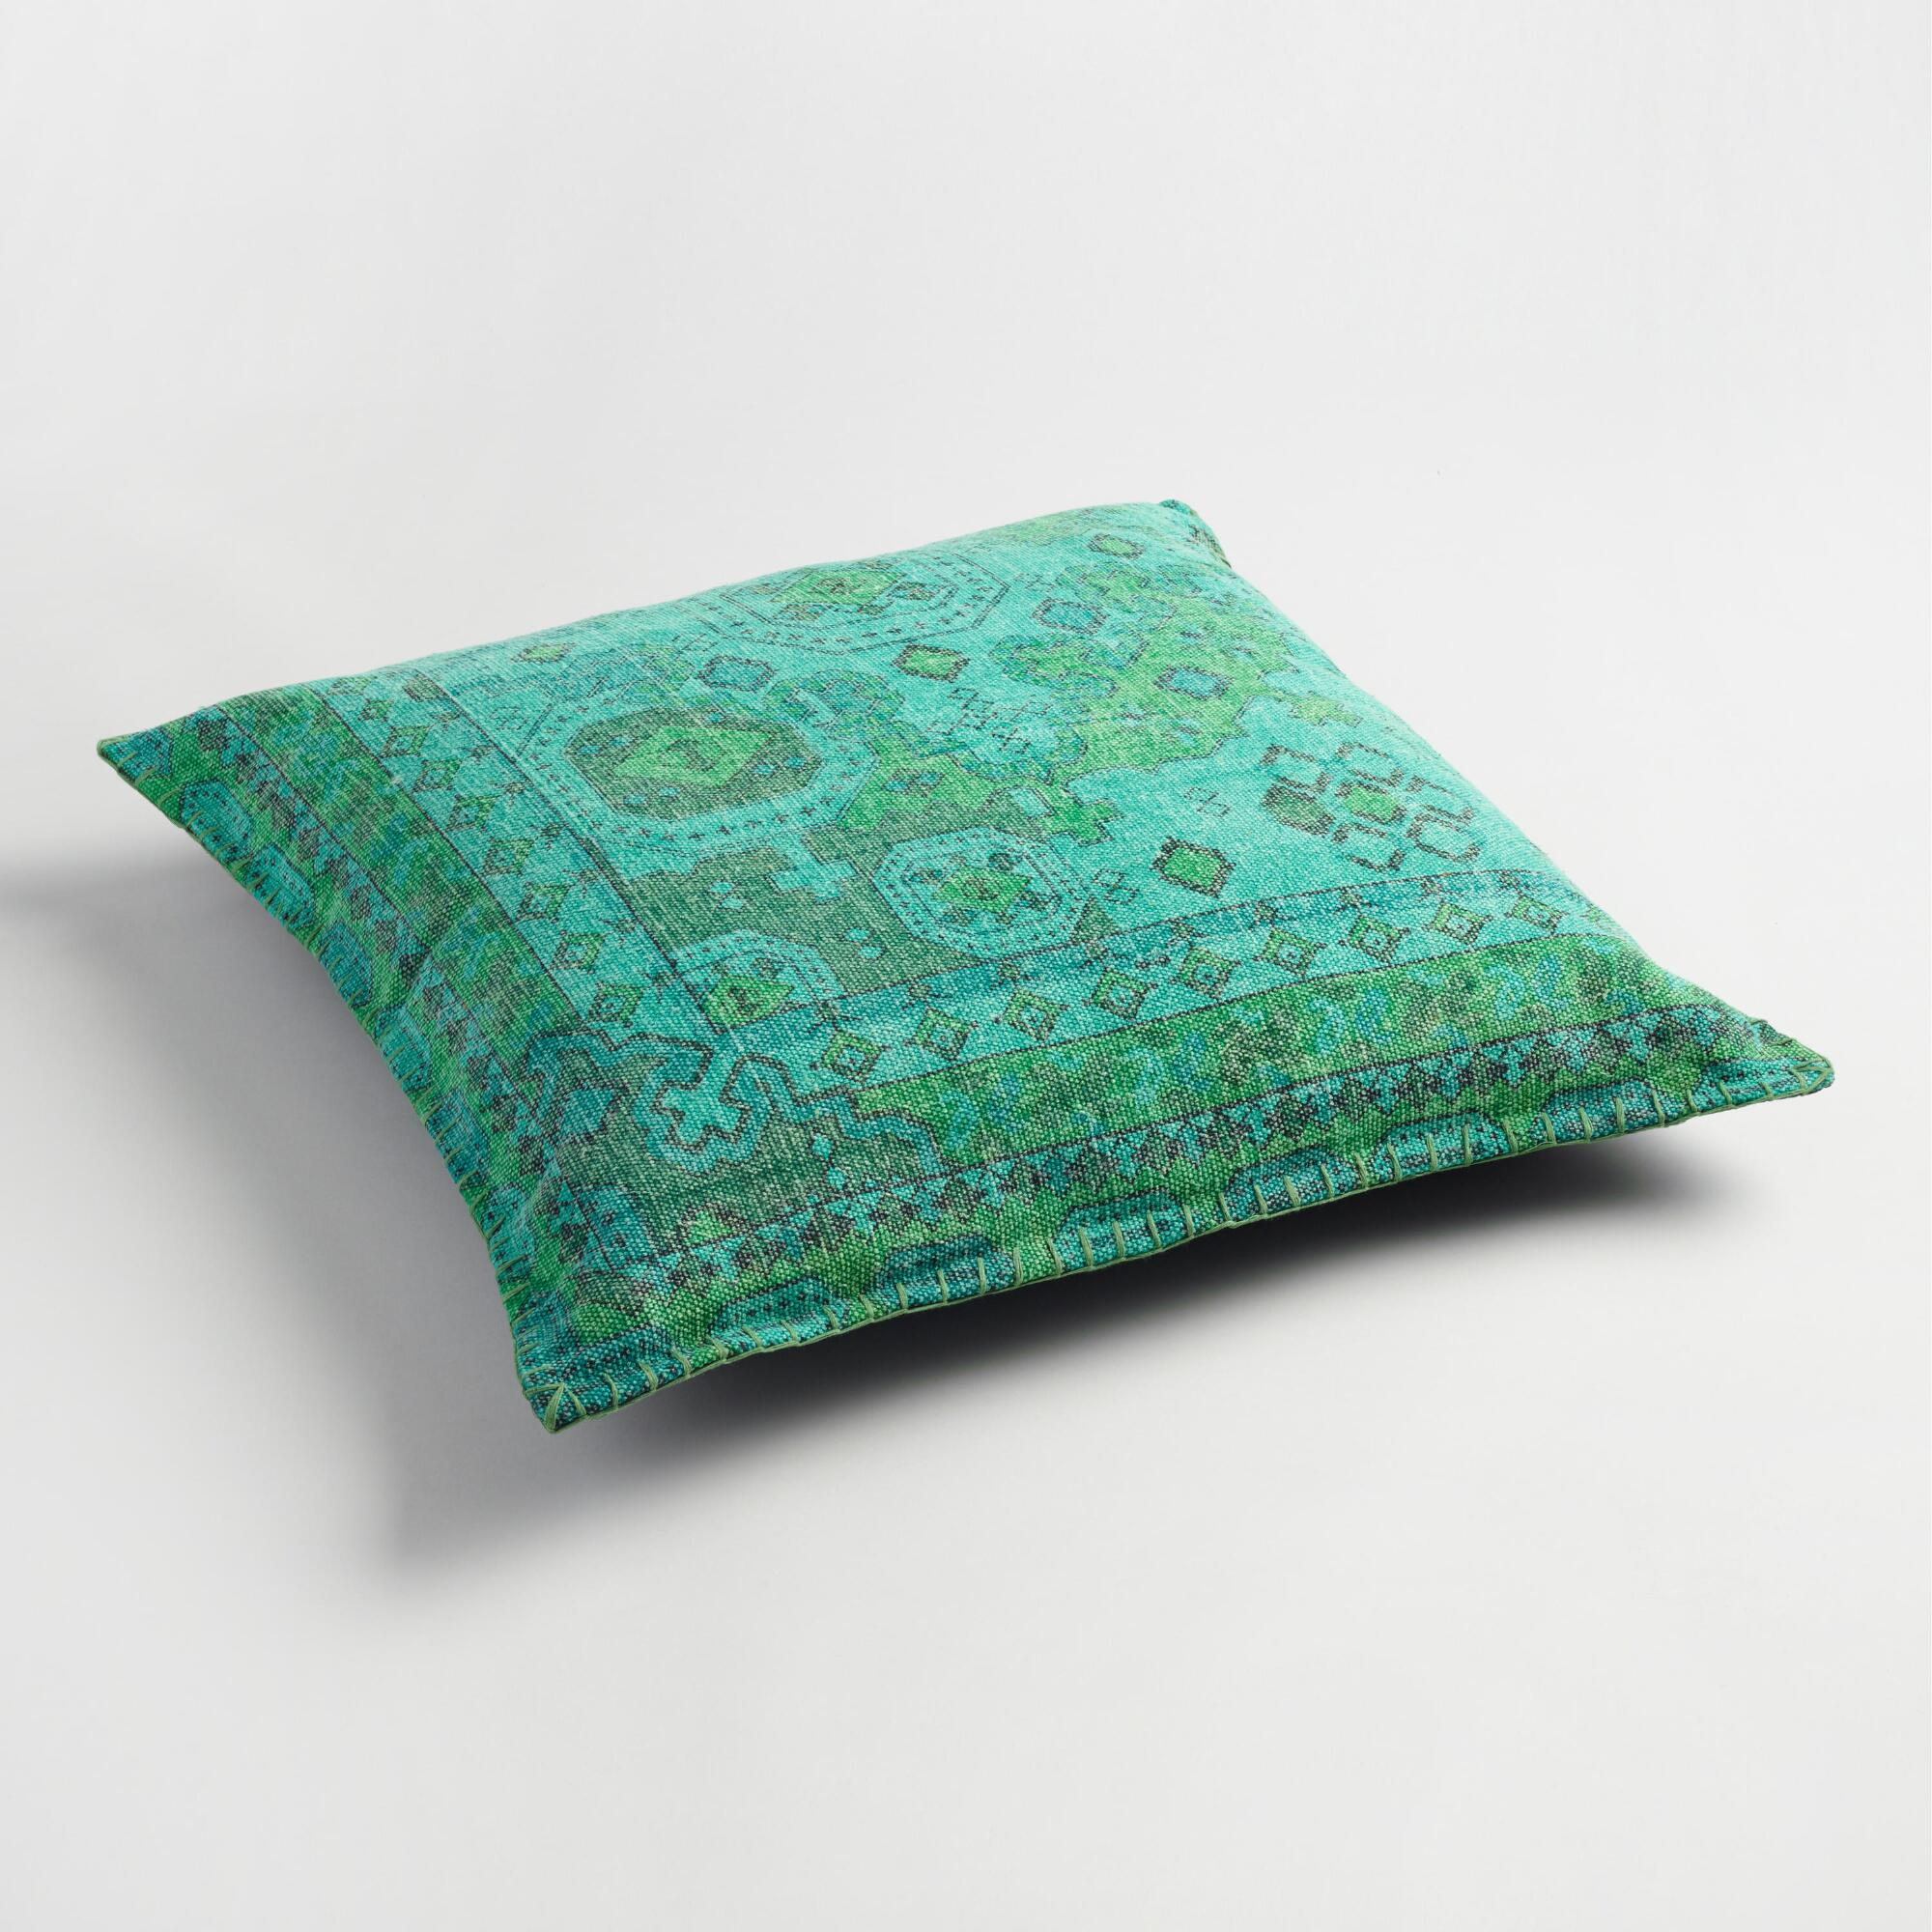 Teal Dhurrie Printed Floor Cushion World Market